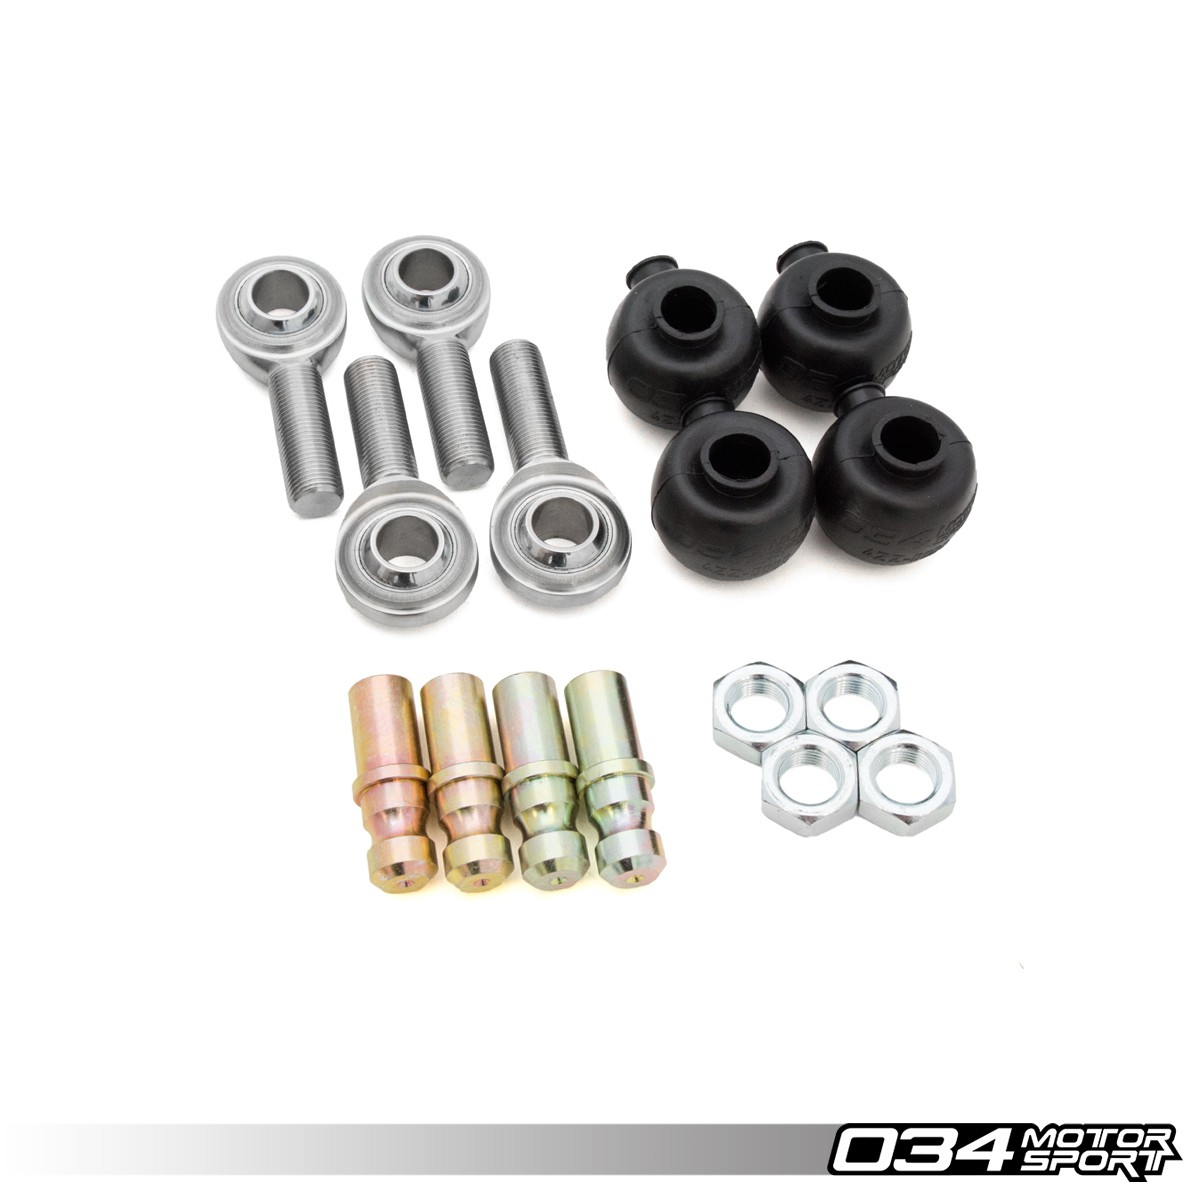 Rebuild Kit, Adjustable Front Upper Control Arm Heim Joints | 034-401-Z035